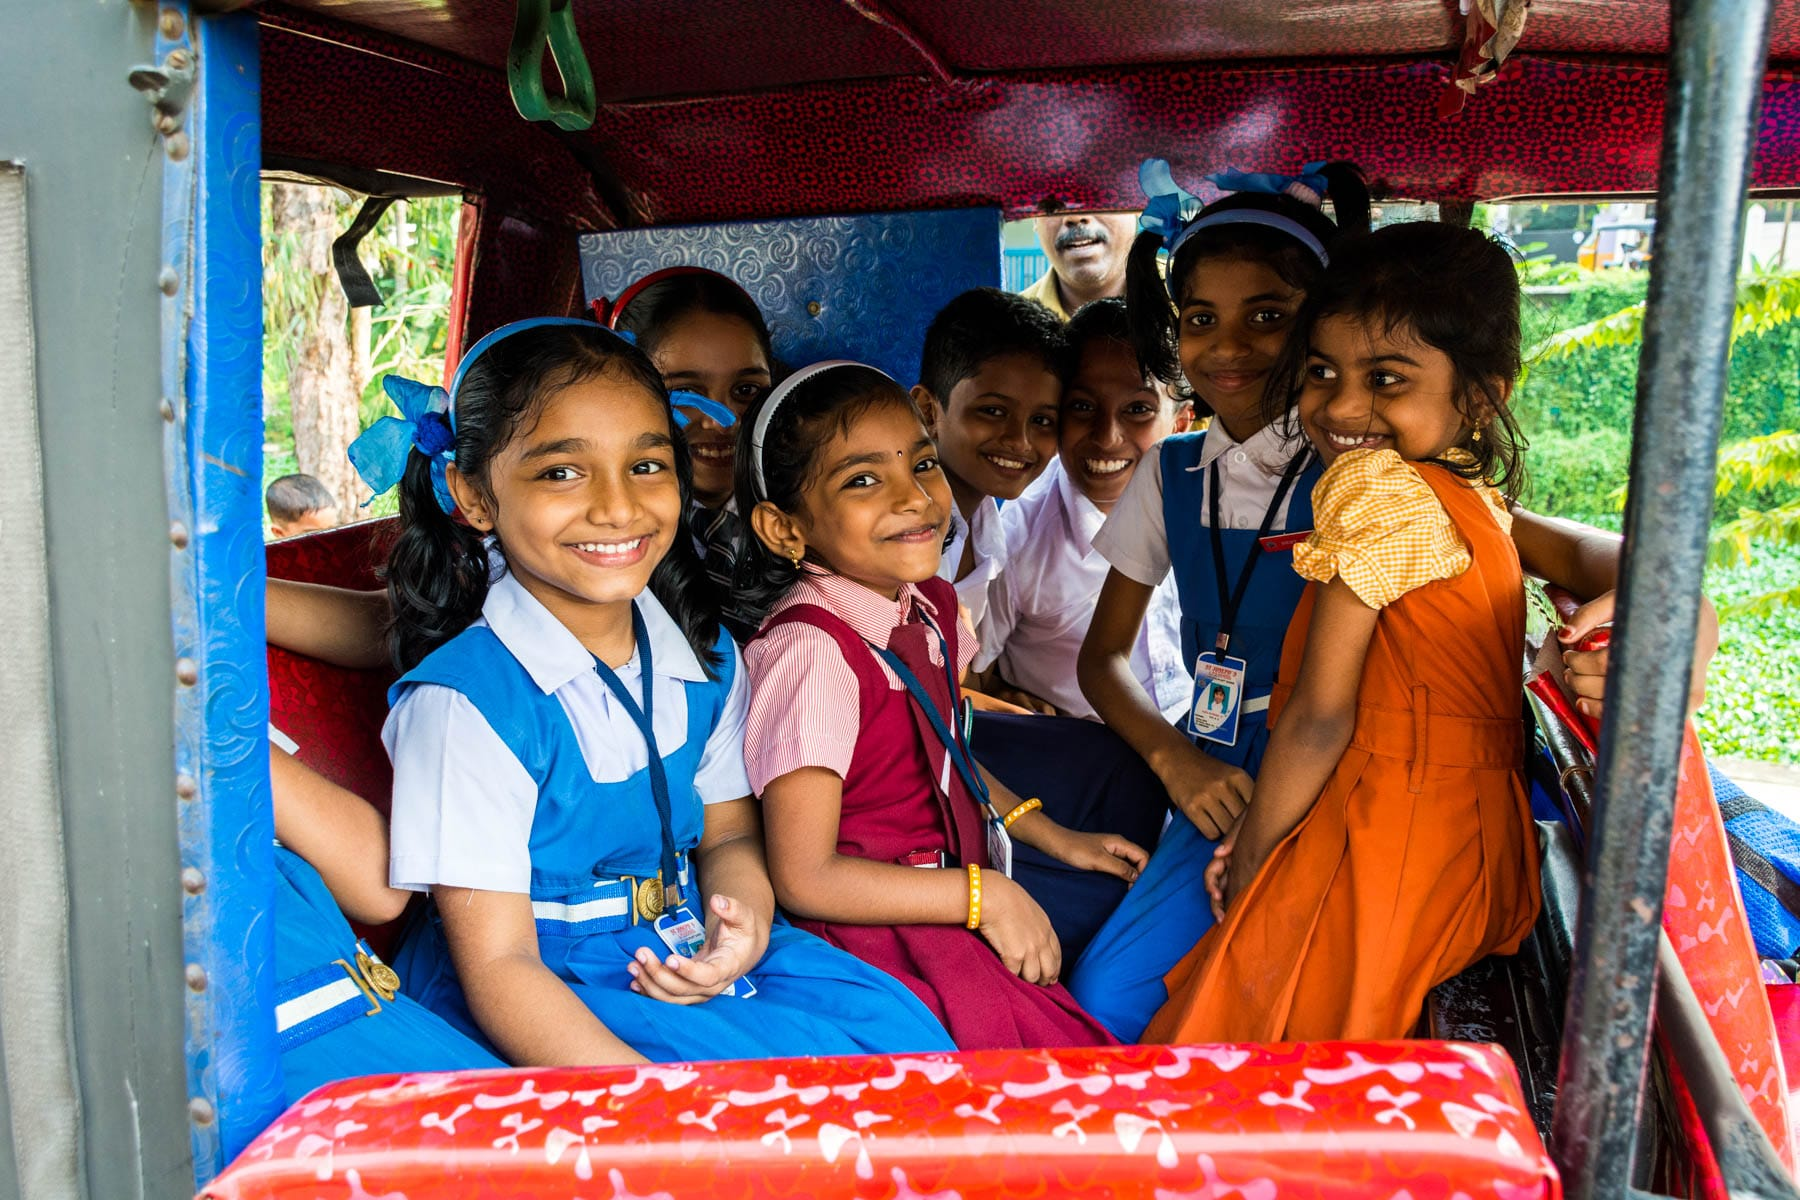 Children in a rickshaw in Alleppey, India - Lost With Purpose